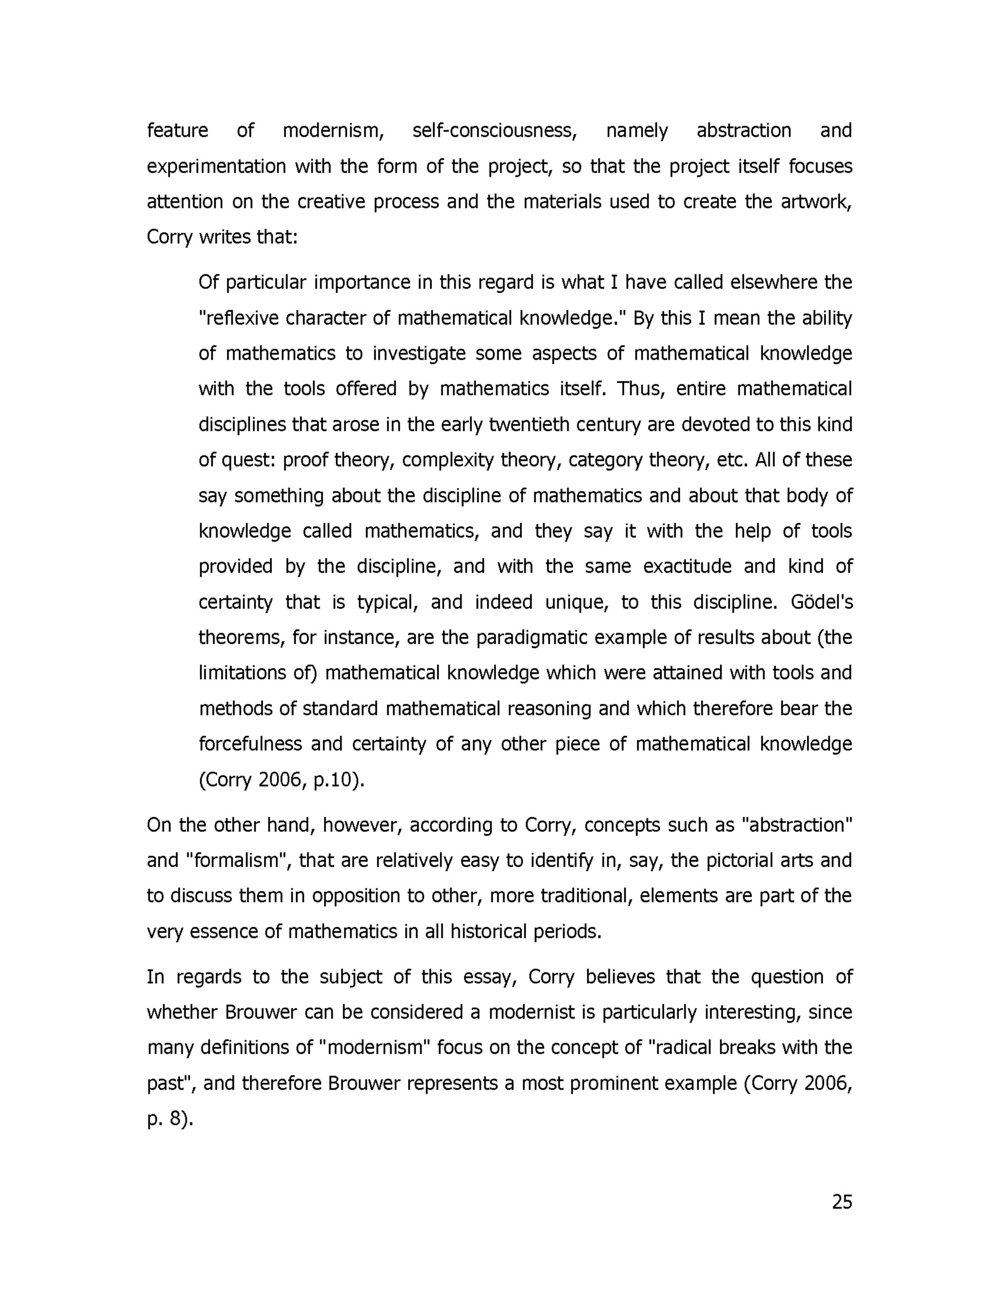 Timpilis, Dimitris (2011) Social and Cultural Approaches to the New Crisis in the Foundations of Mathematics, L. E. J. Brouwer's Free Will versus Leibniz's Dream_Page_26.jpg